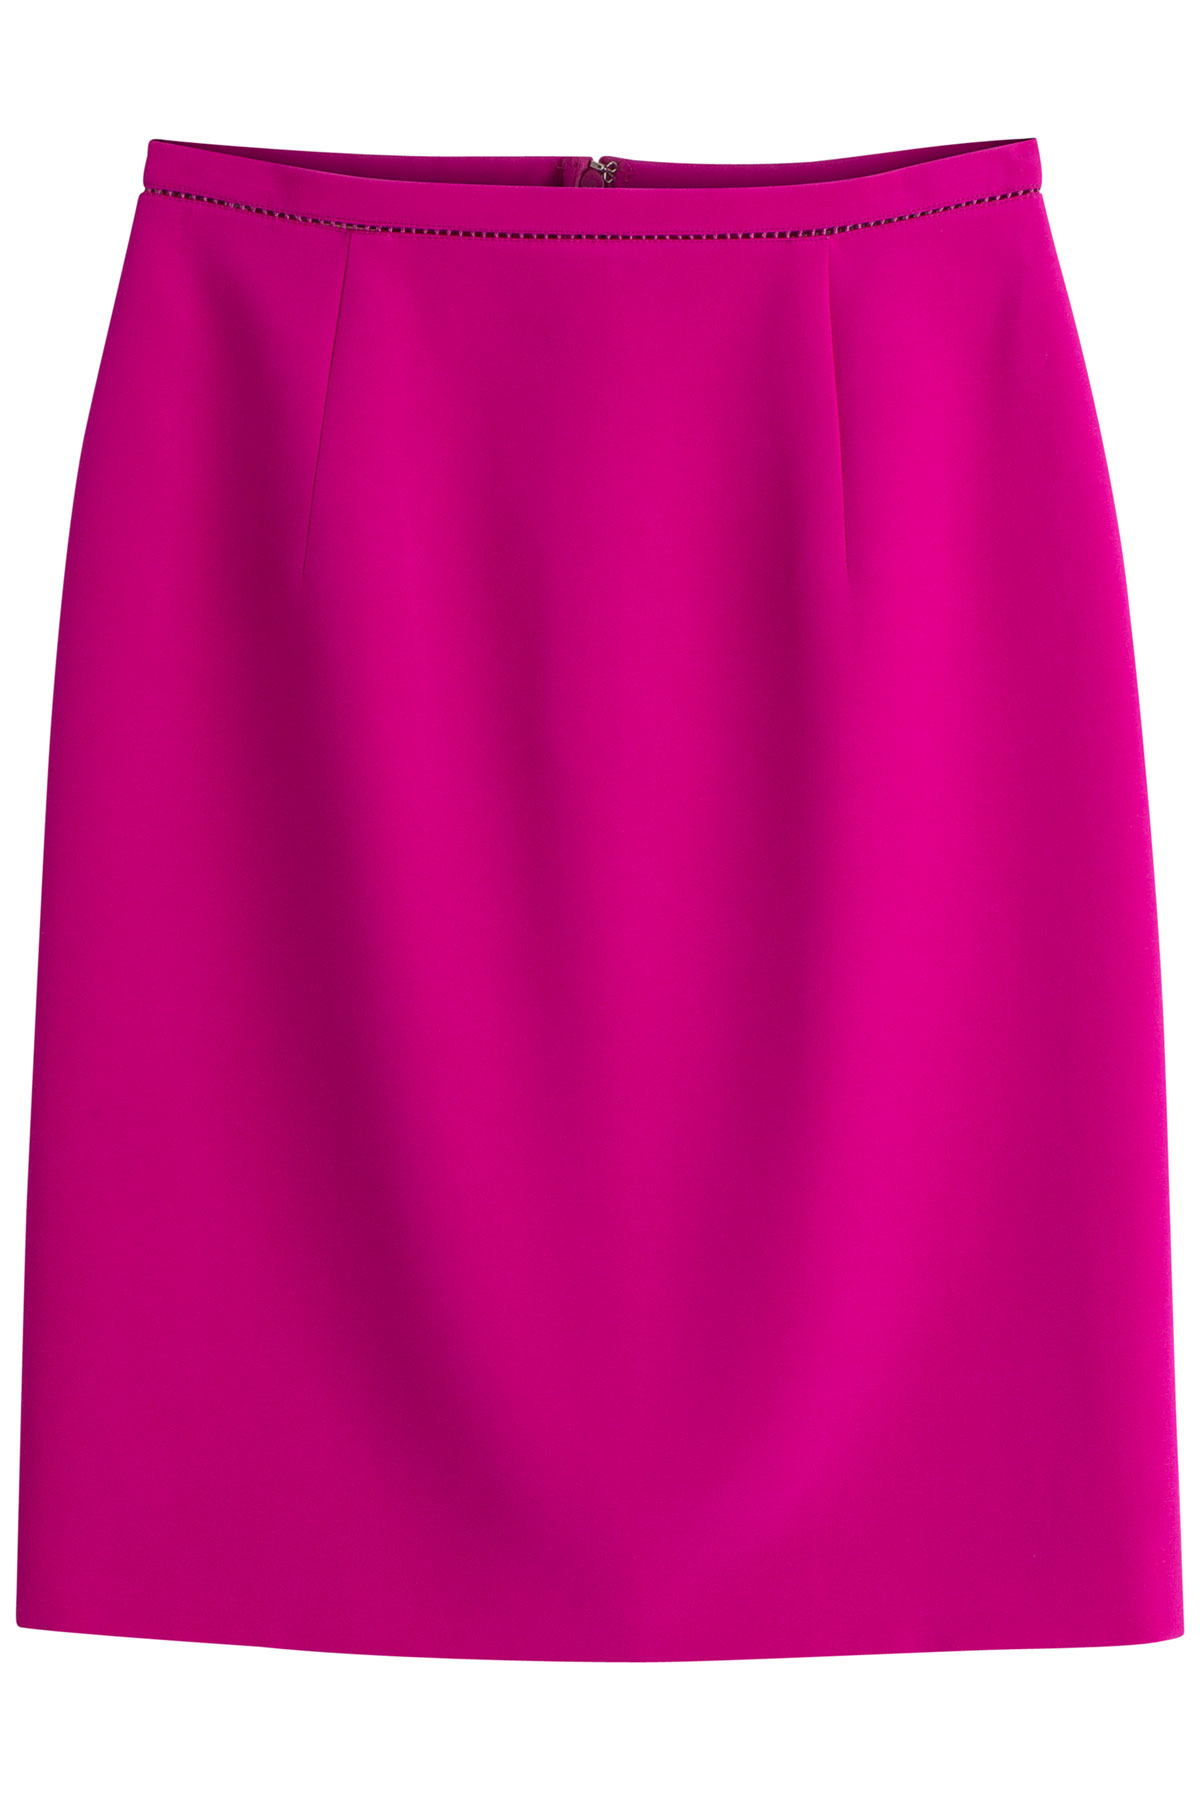 giambattista valli silk cotton pencil skirt in pink lyst